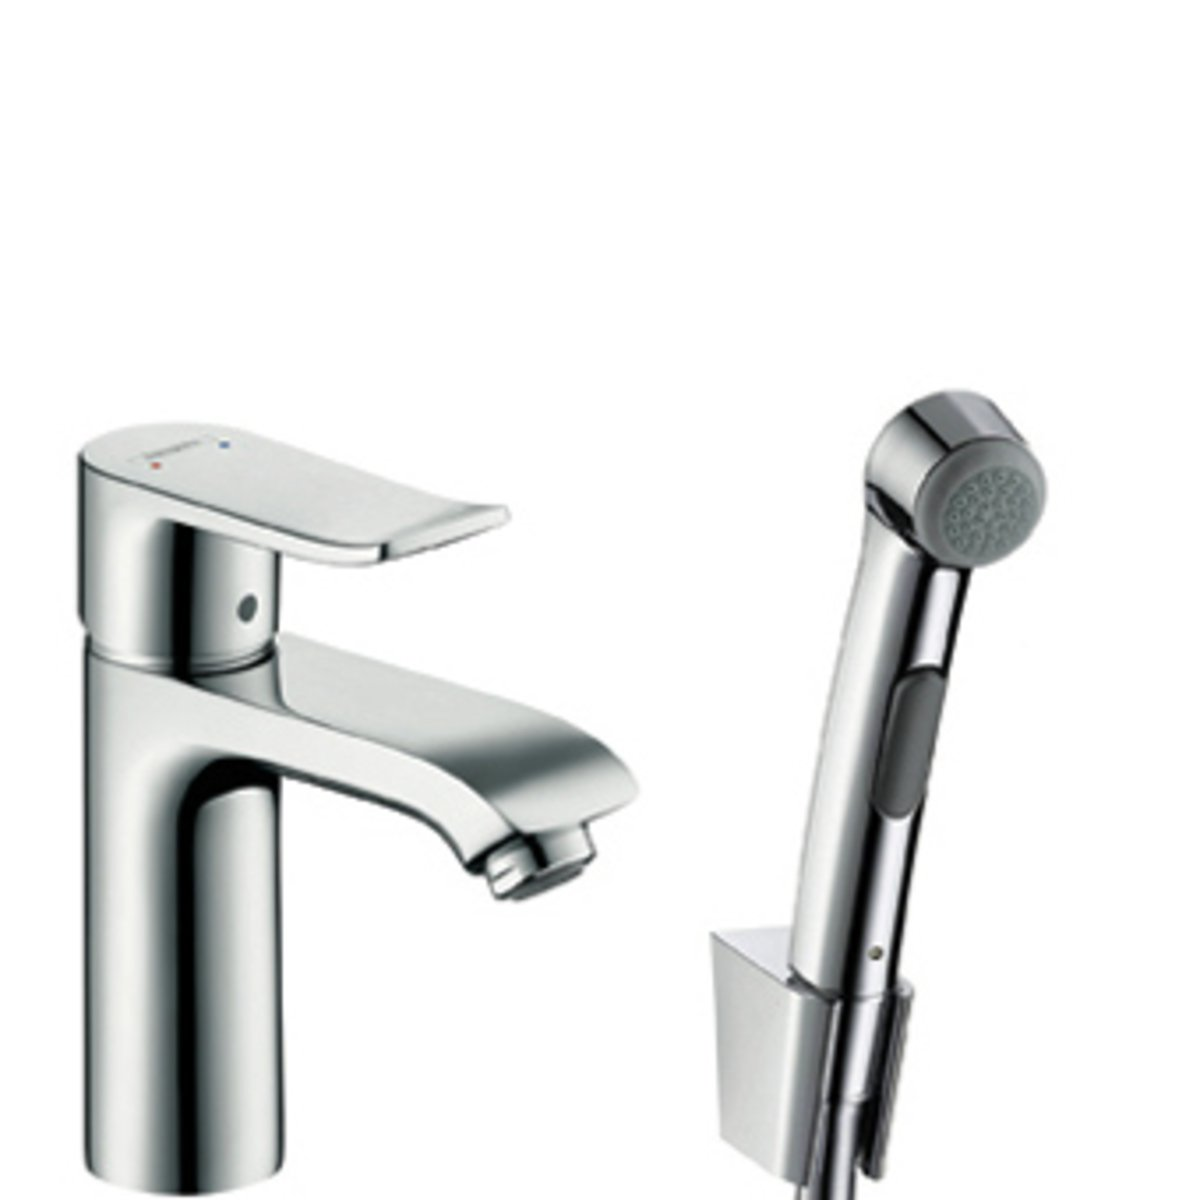 hansgrohe metris wastafelkraan inclusief bidetdouche chroom 31285000. Black Bedroom Furniture Sets. Home Design Ideas